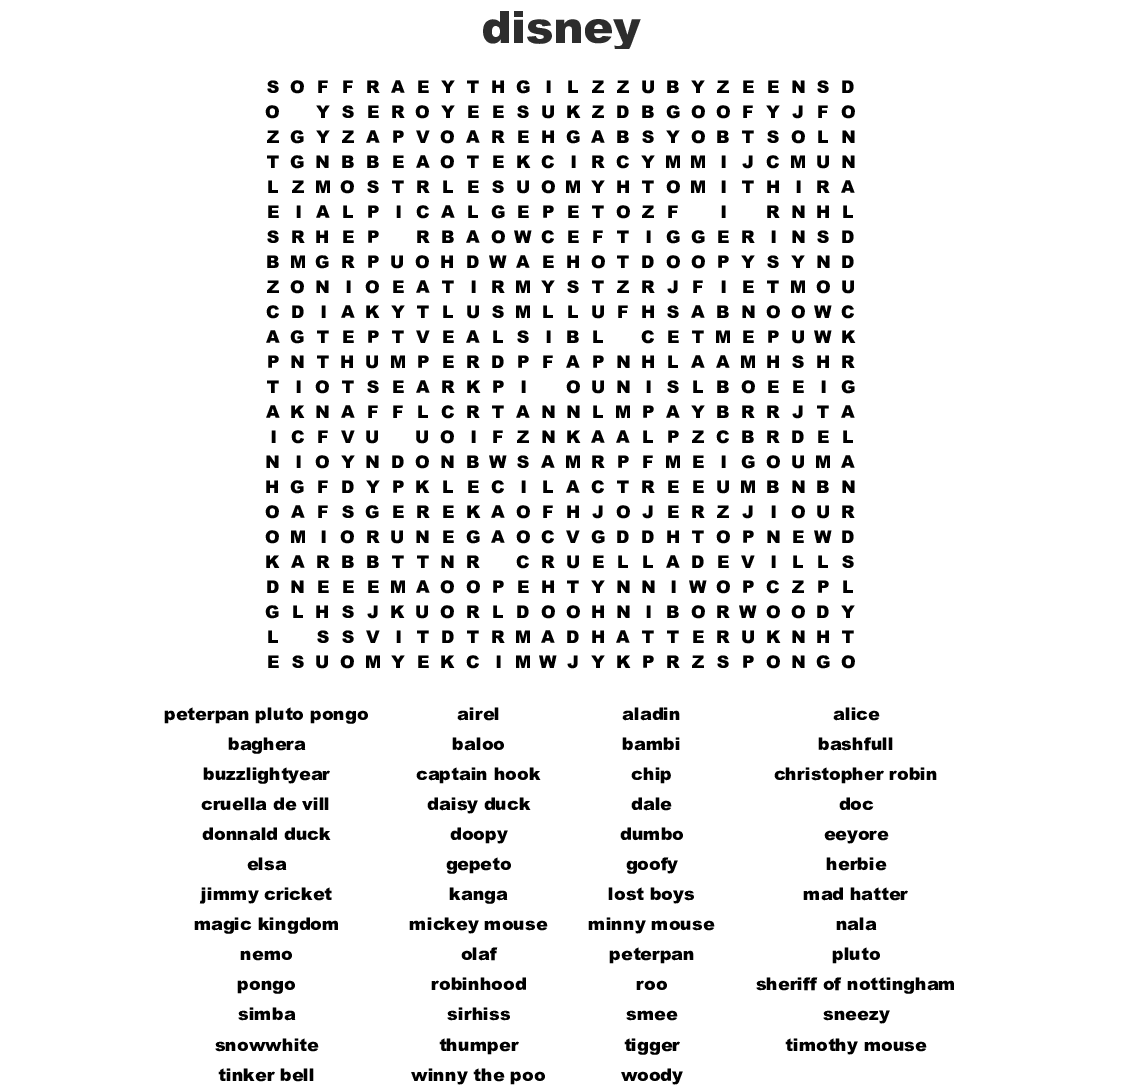 photo relating to Disney Word Search Printable called Disney Figures Term Glance - WordMint